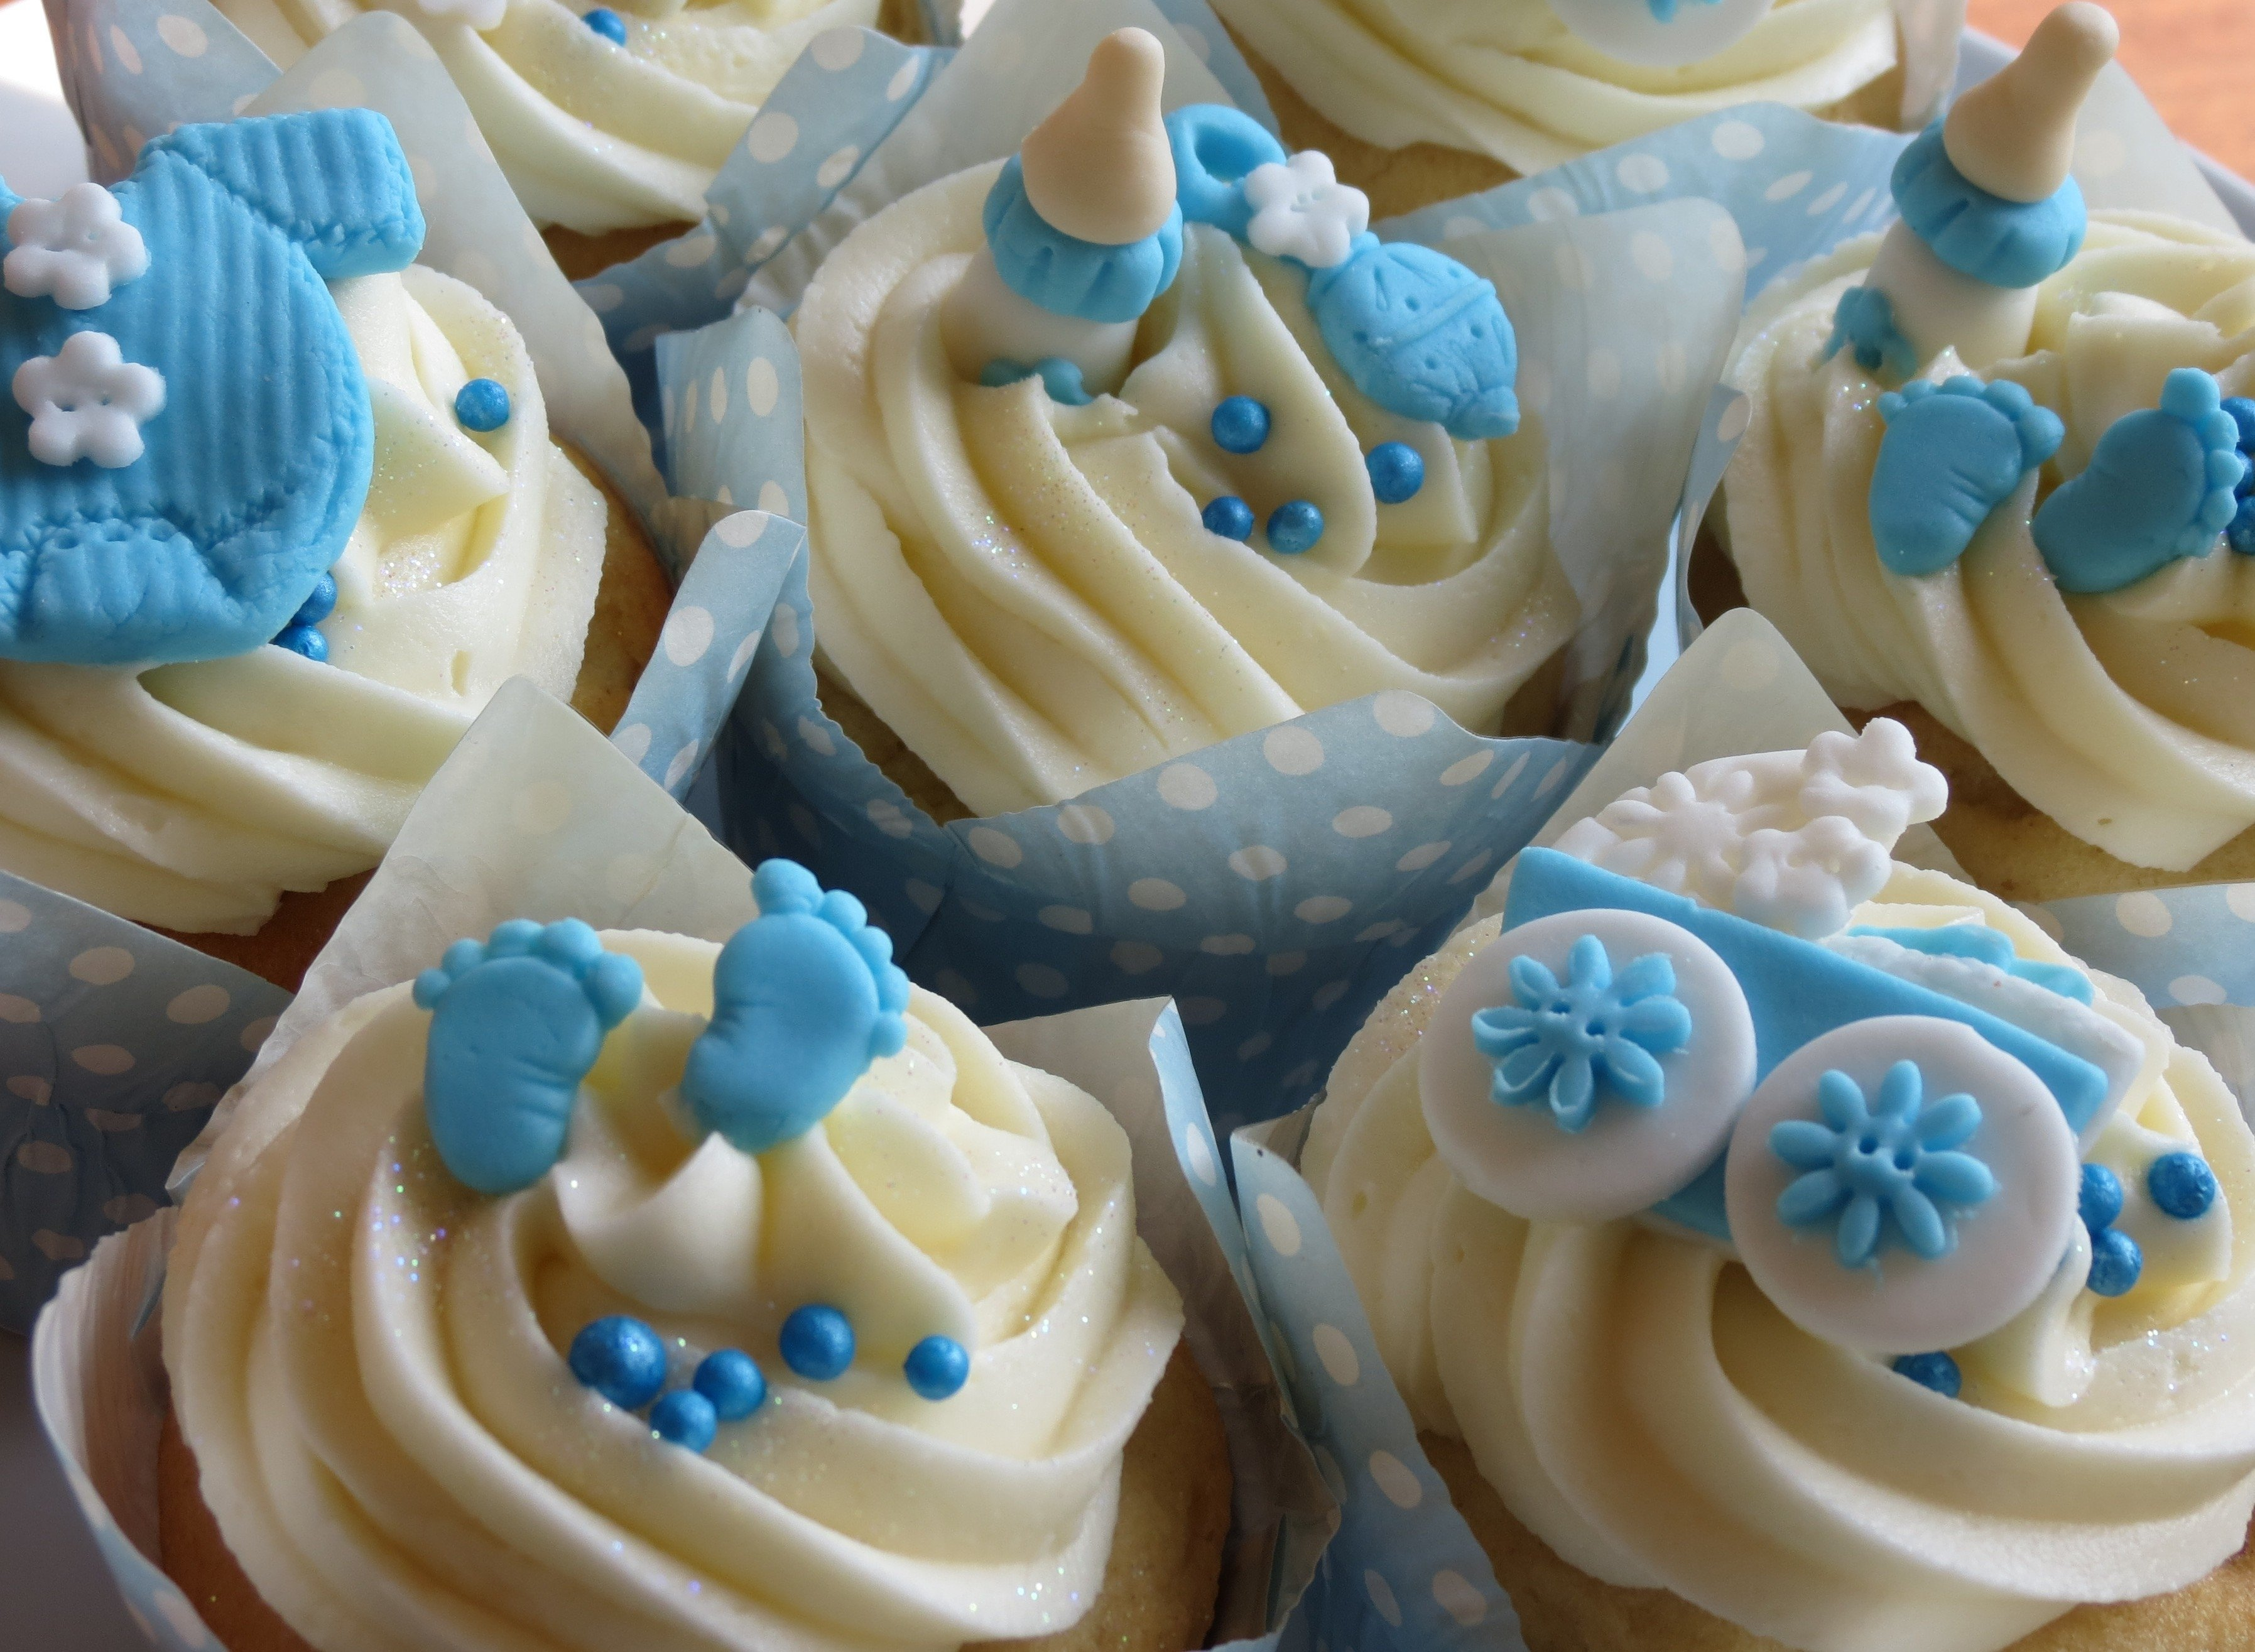 10 Famous Boy Baby Shower Cakes Ideas baby shower cupcakes ideas for a boy omega center ideas for baby 1 2020